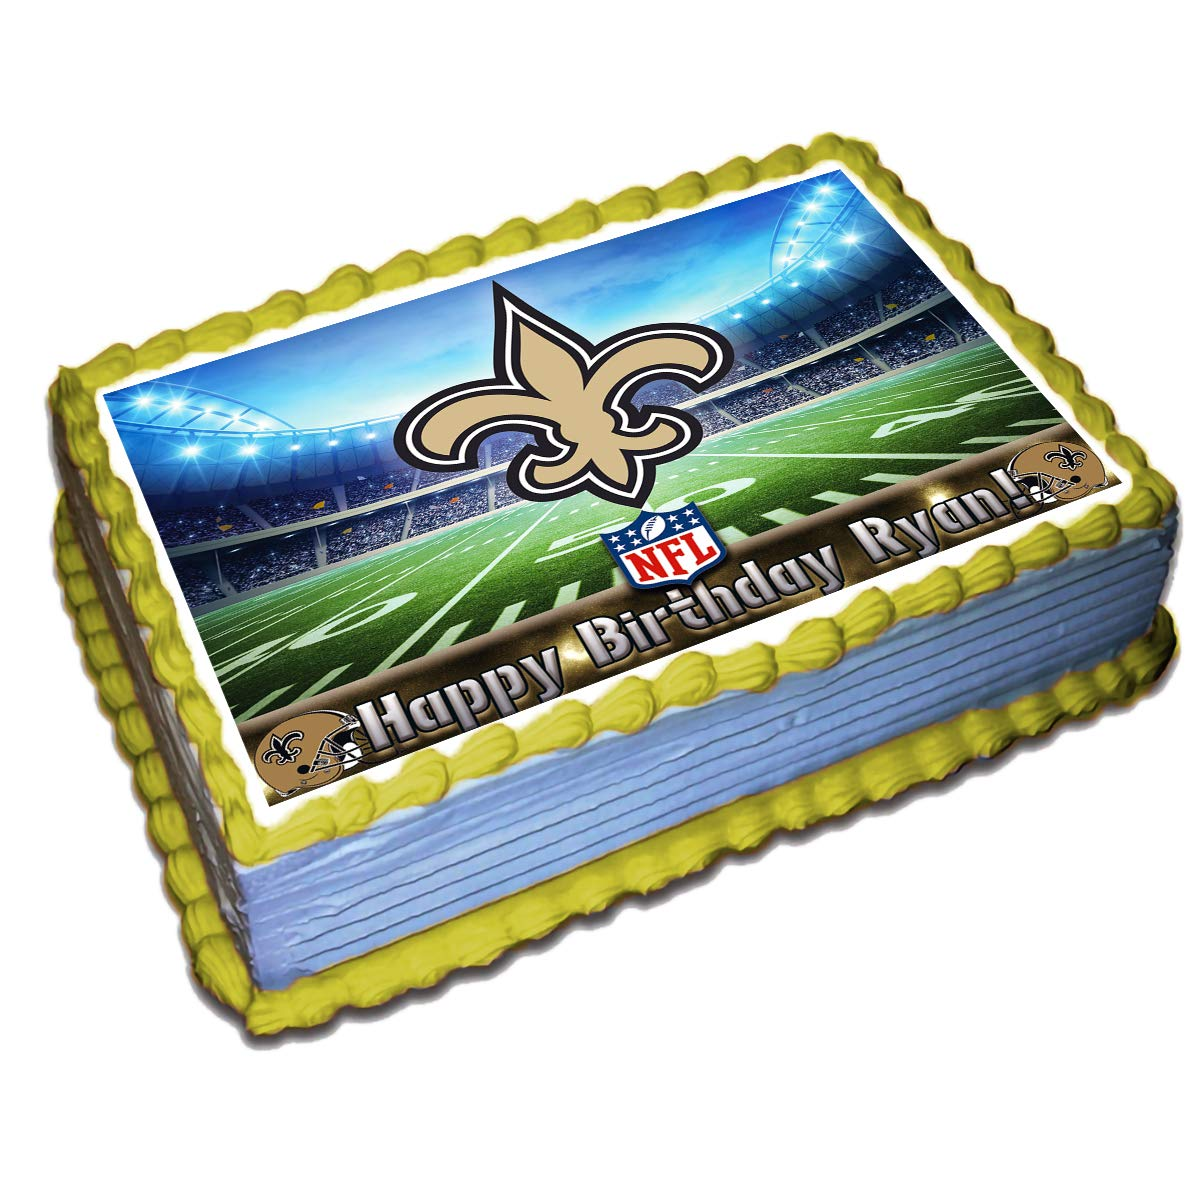 Wondrous New Orleans Saints Nfl Personalized Cake Topper Icing Sugar Paper Personalised Birthday Cards Veneteletsinfo